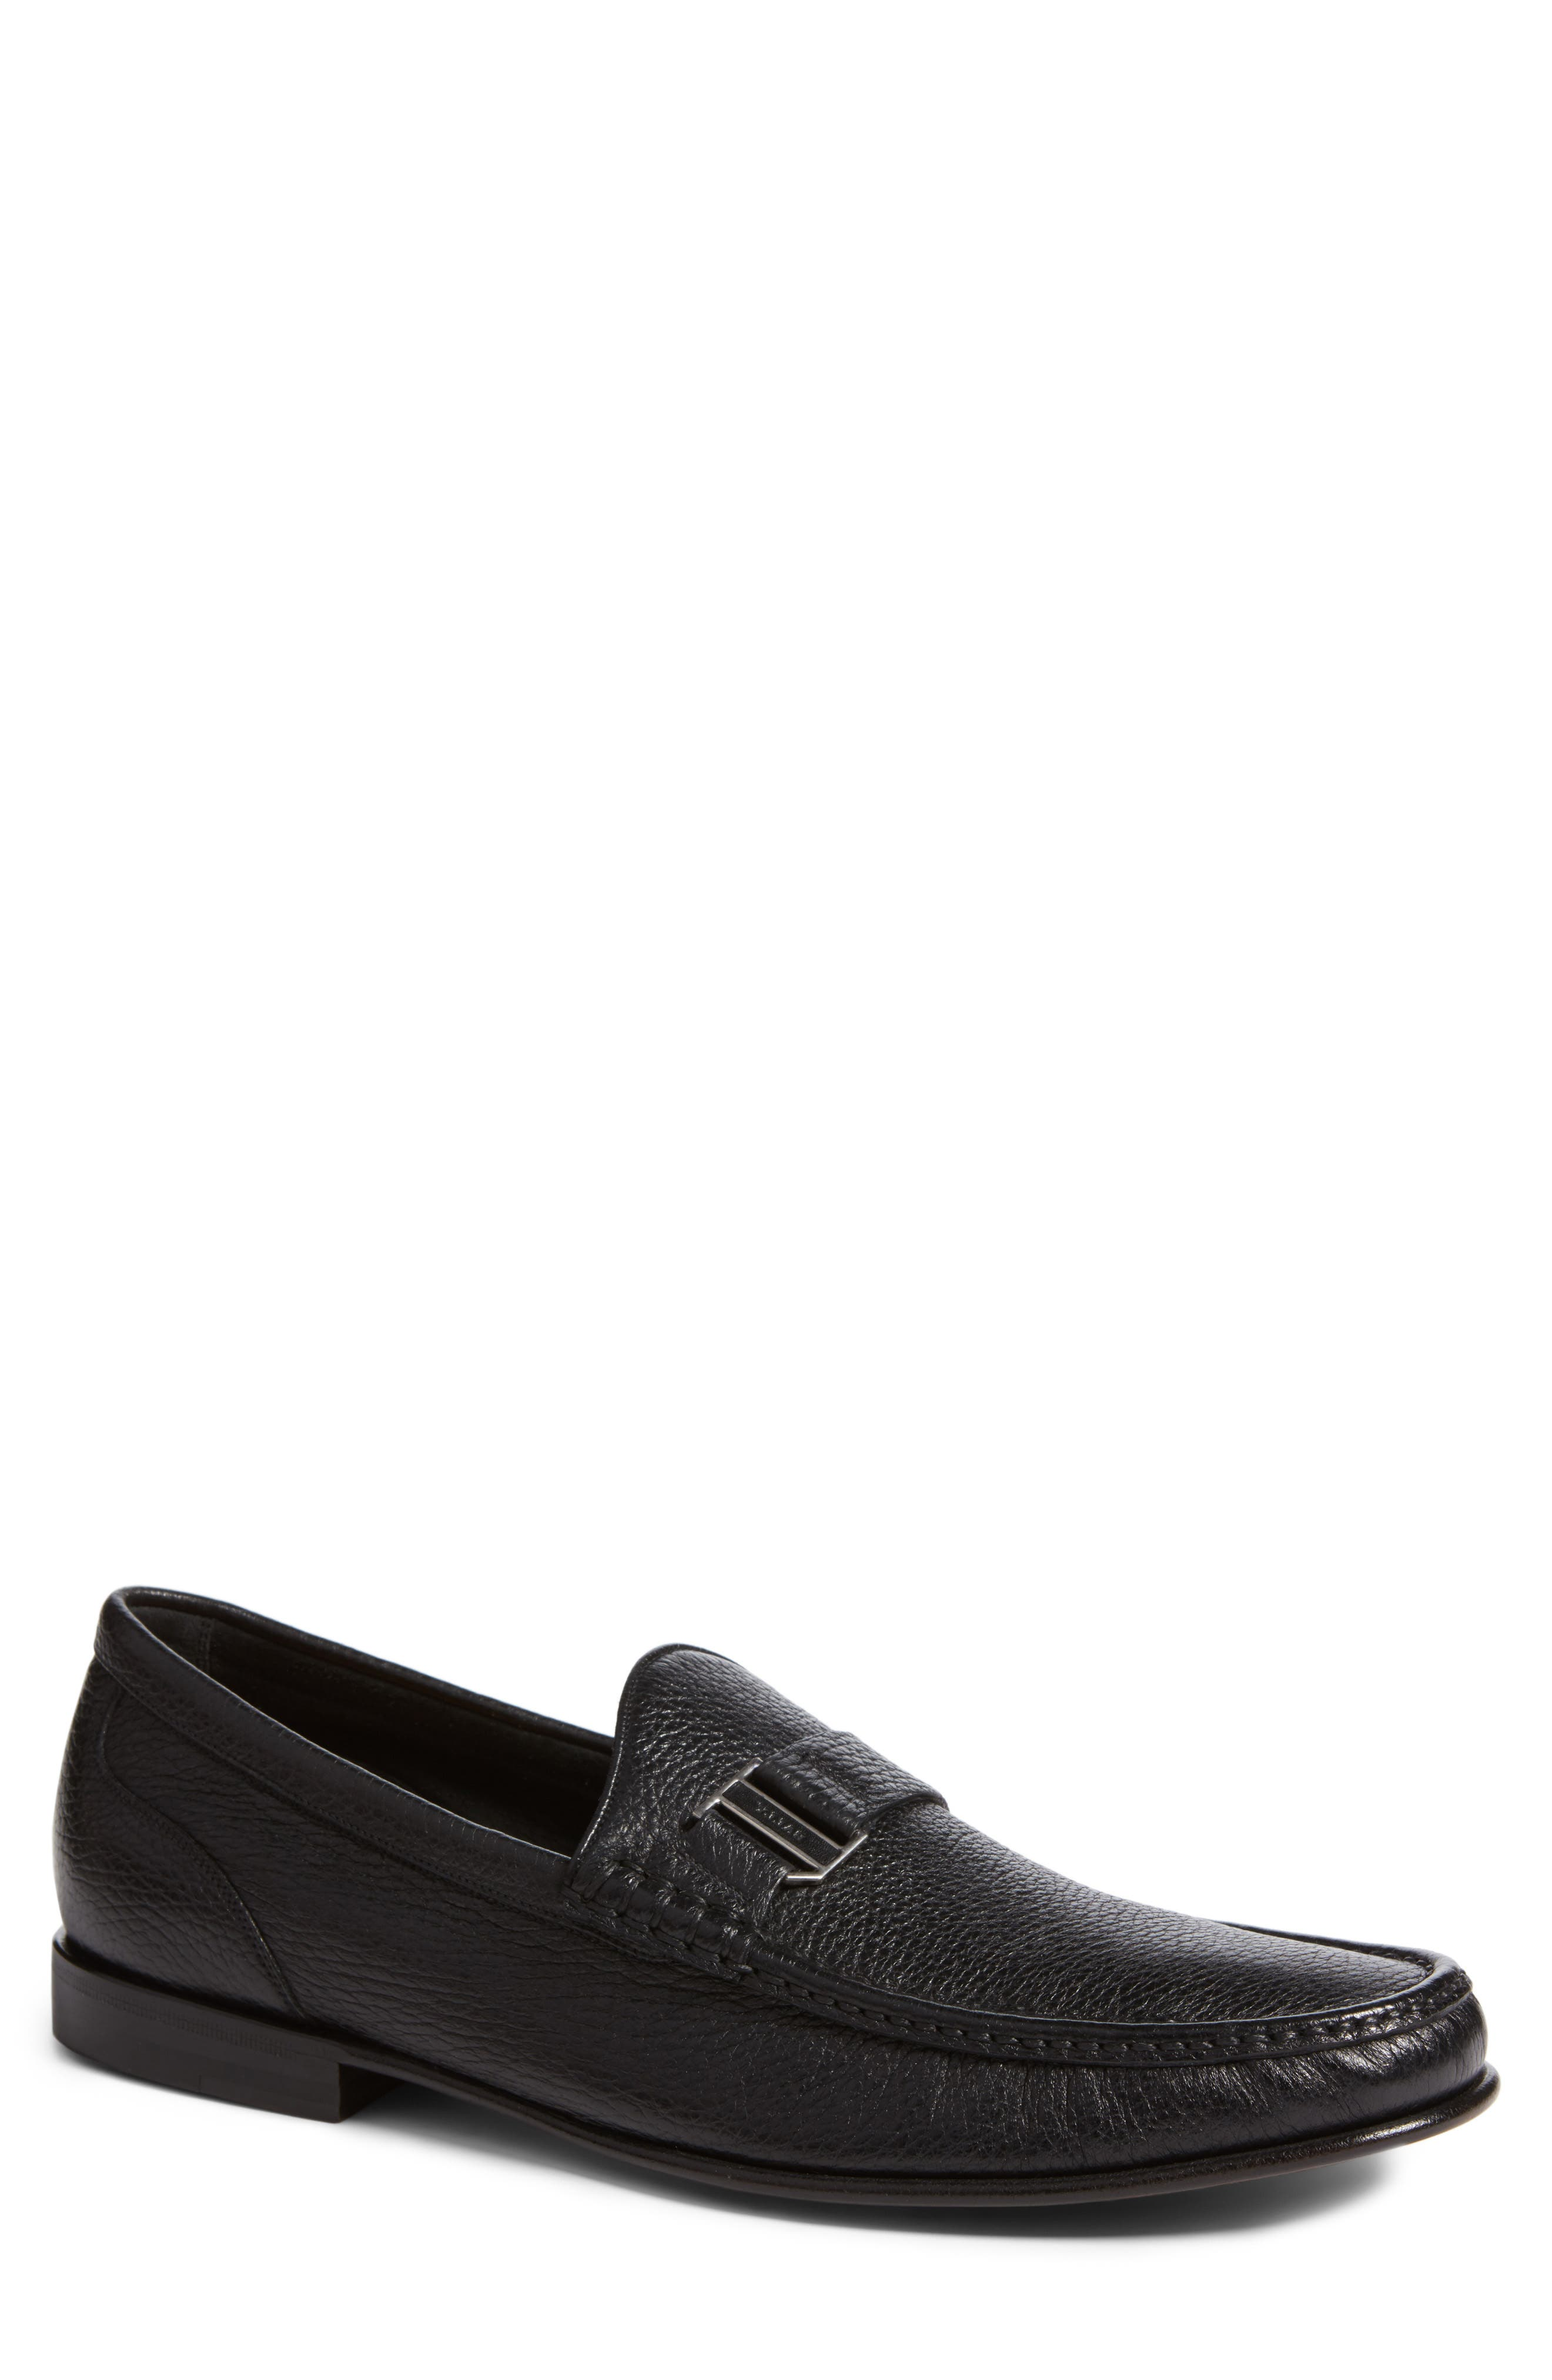 Suver Loafer,                             Main thumbnail 1, color,                             001